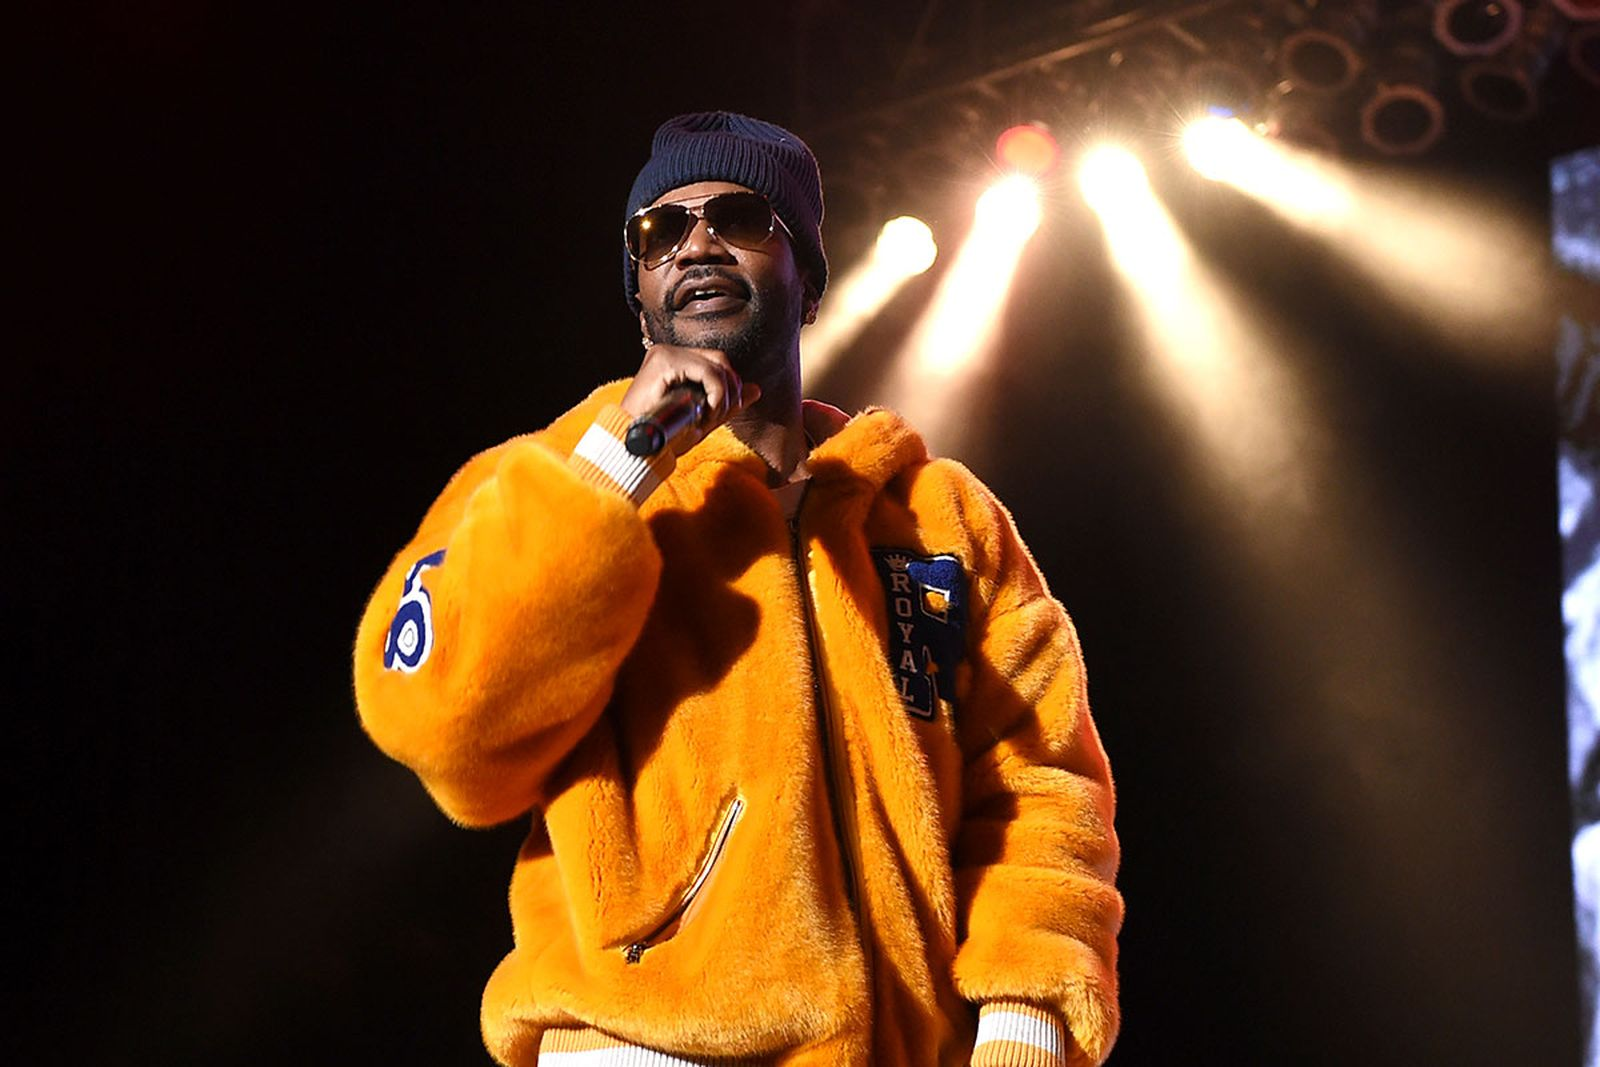 Juicy J performs at Mac Miller memorial concert